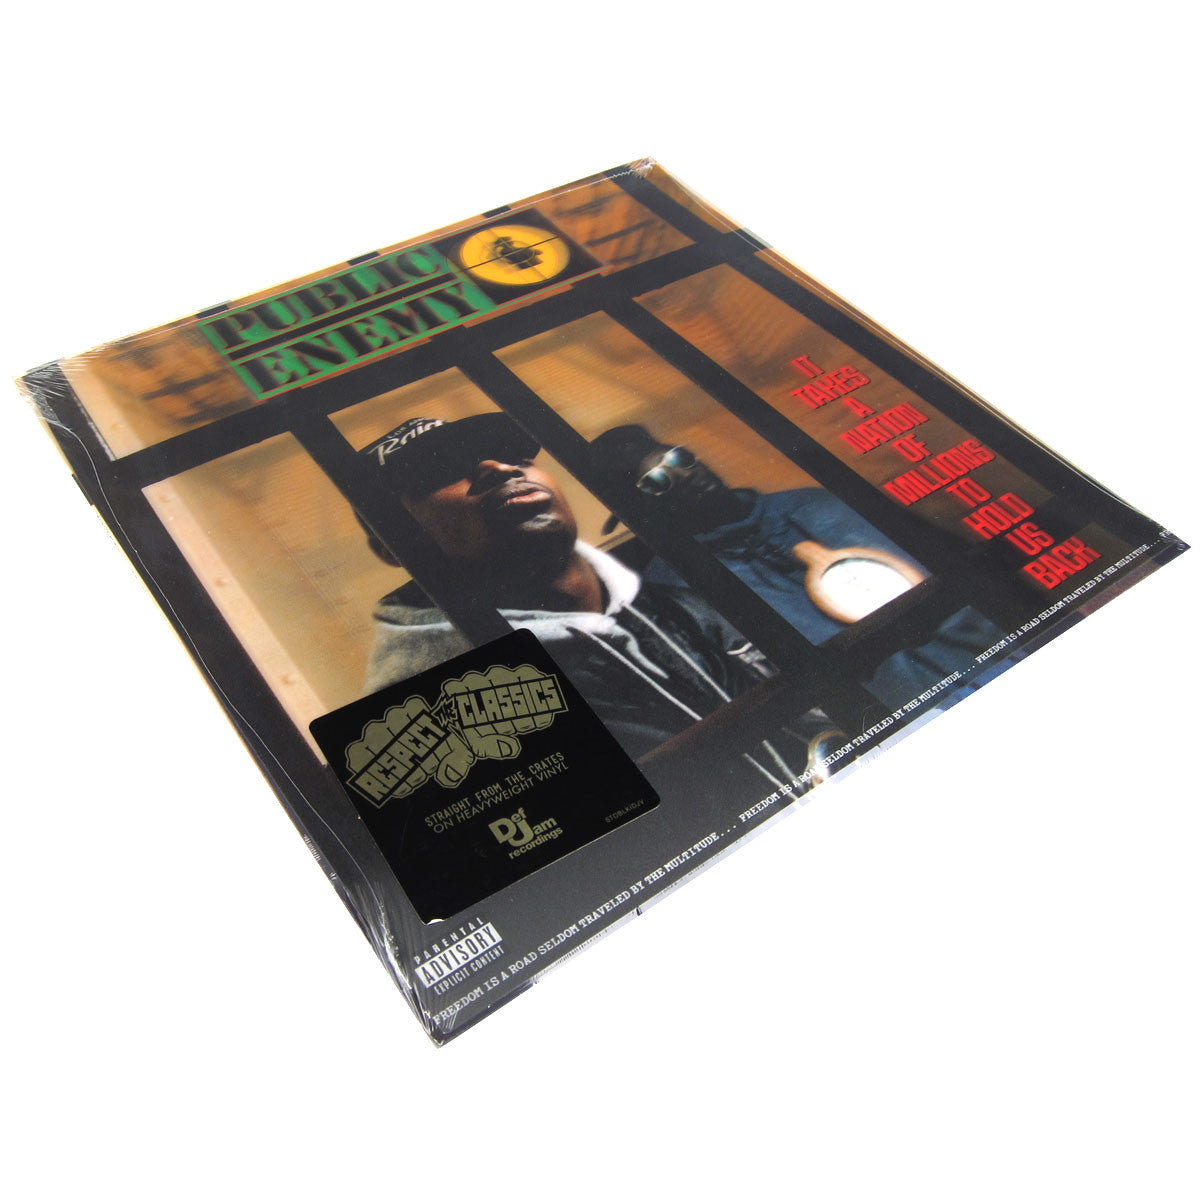 Public Enemy: It Takes A Nation Of Millions To Hold Us Back Vinyl 2LP (Record Store Day 2014)